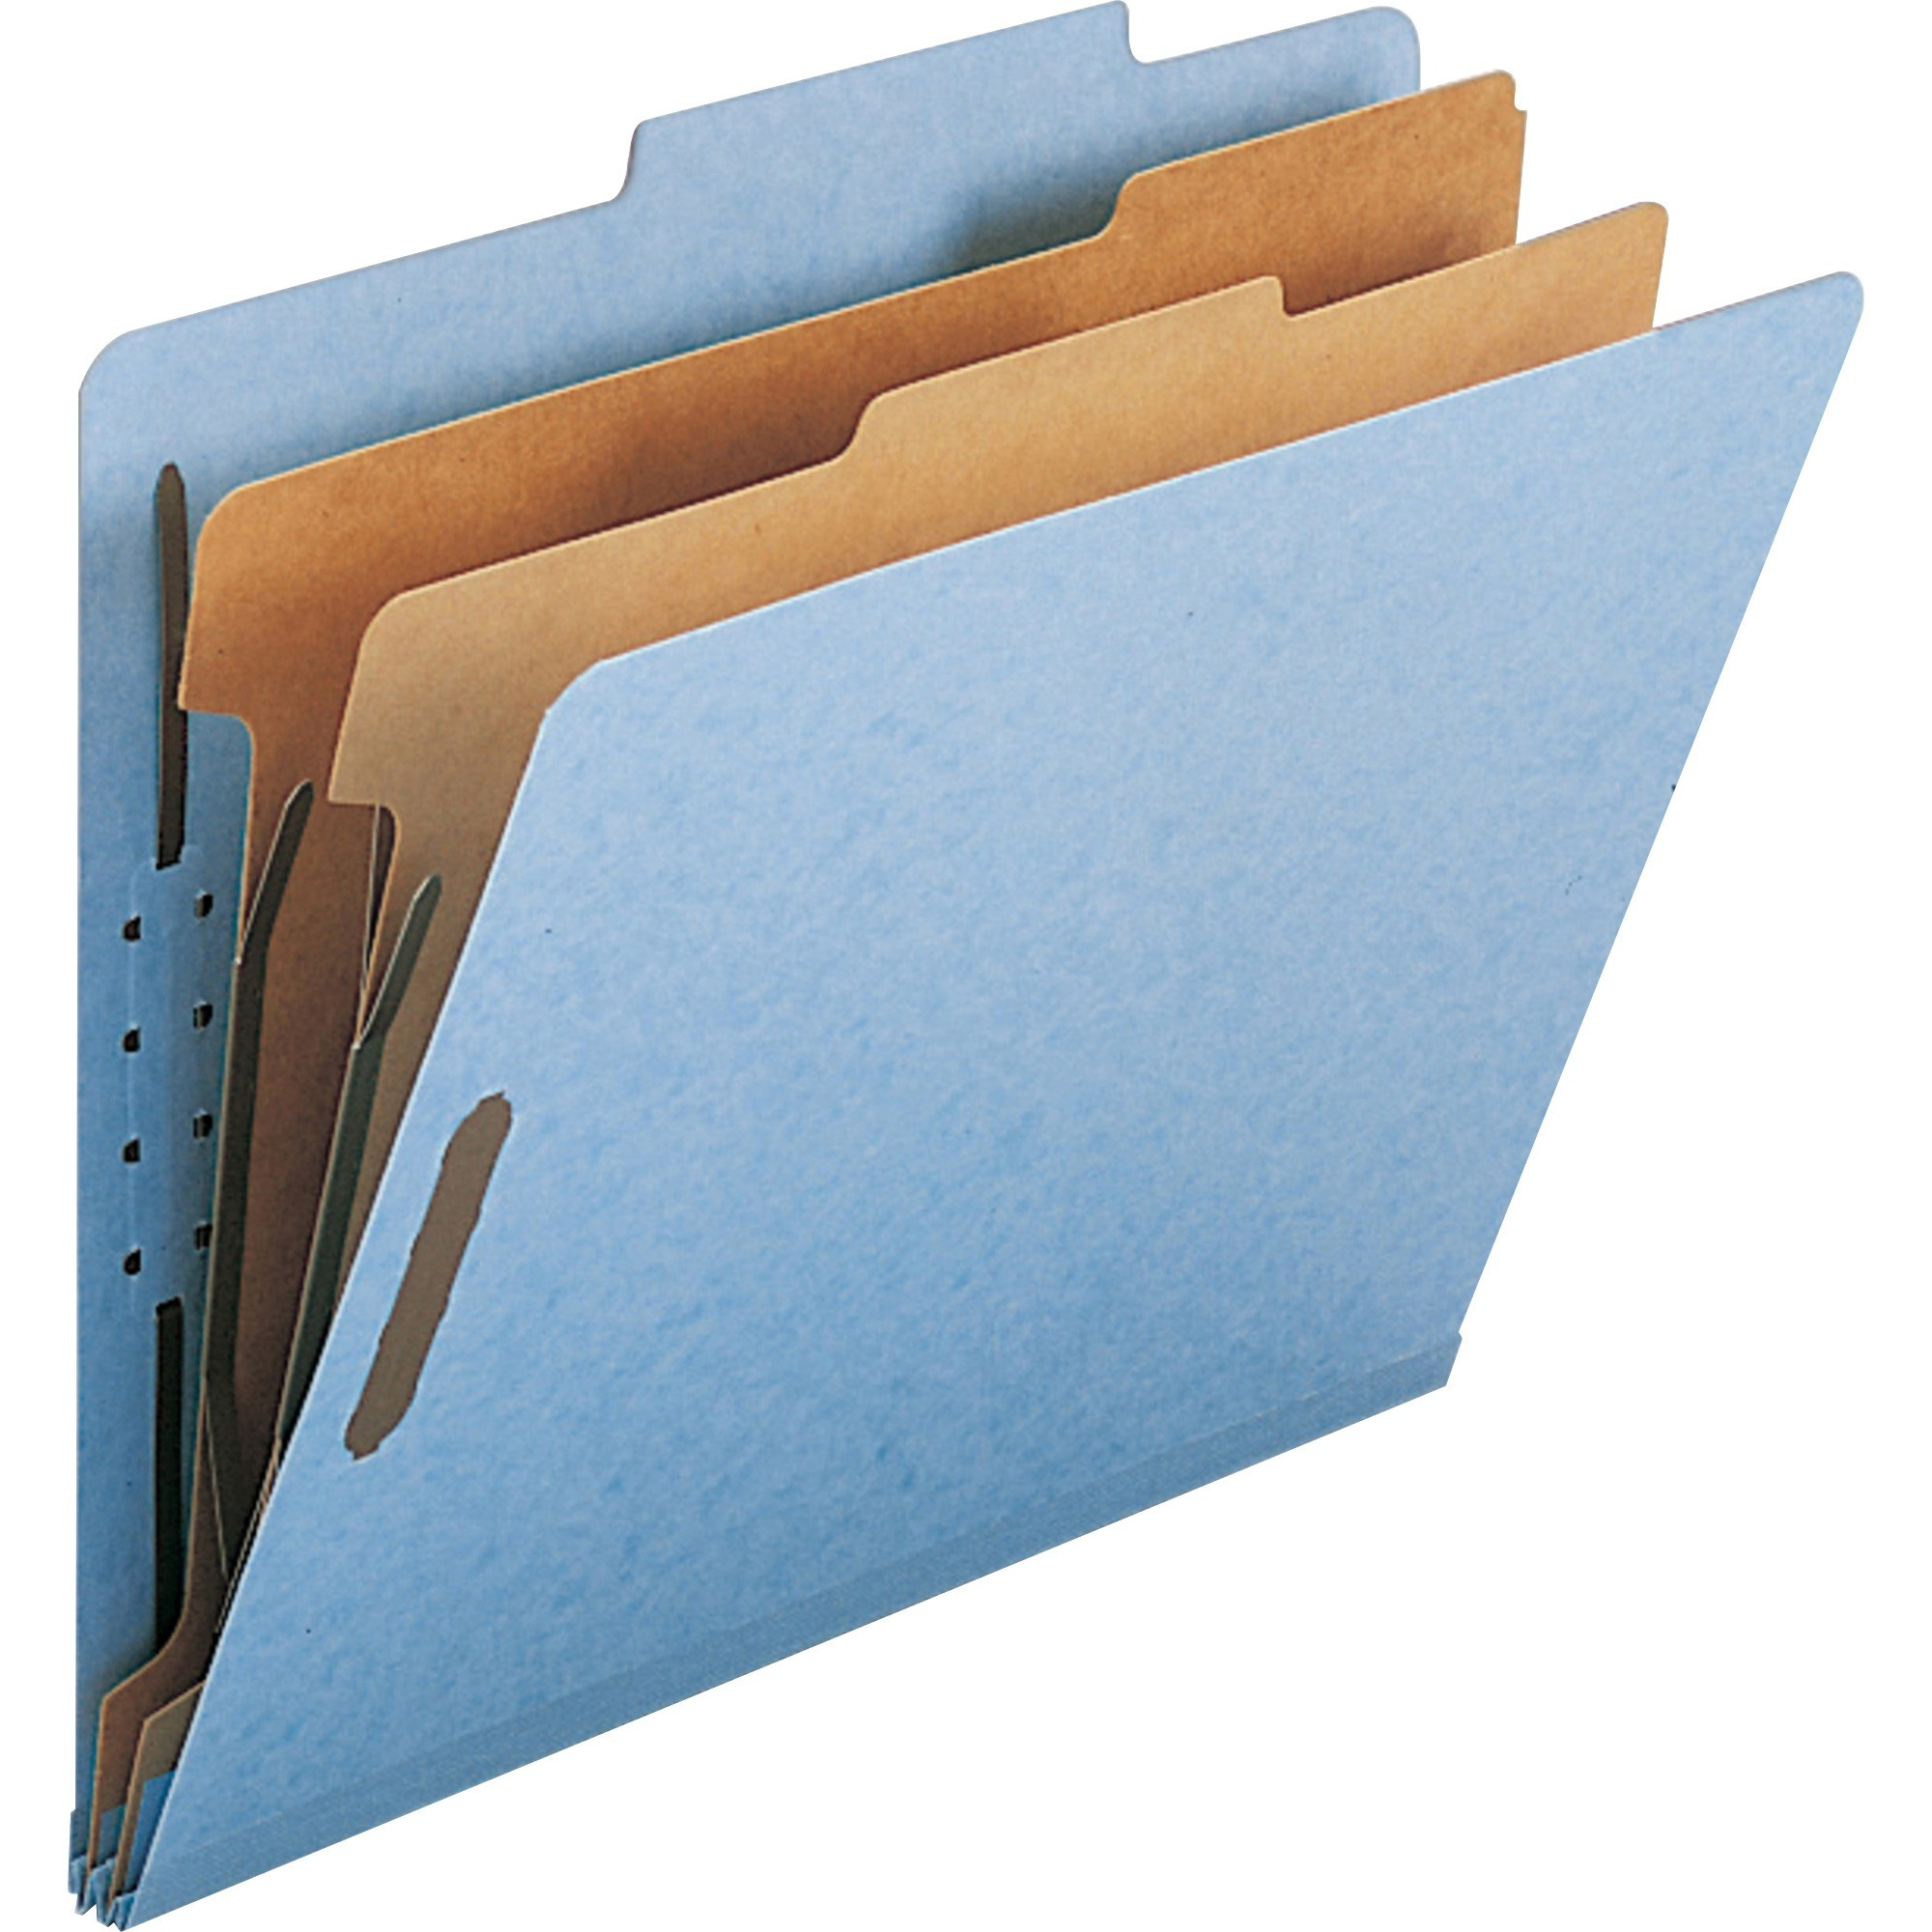 home    office supplies    filing supplies    classification folders    pressboard